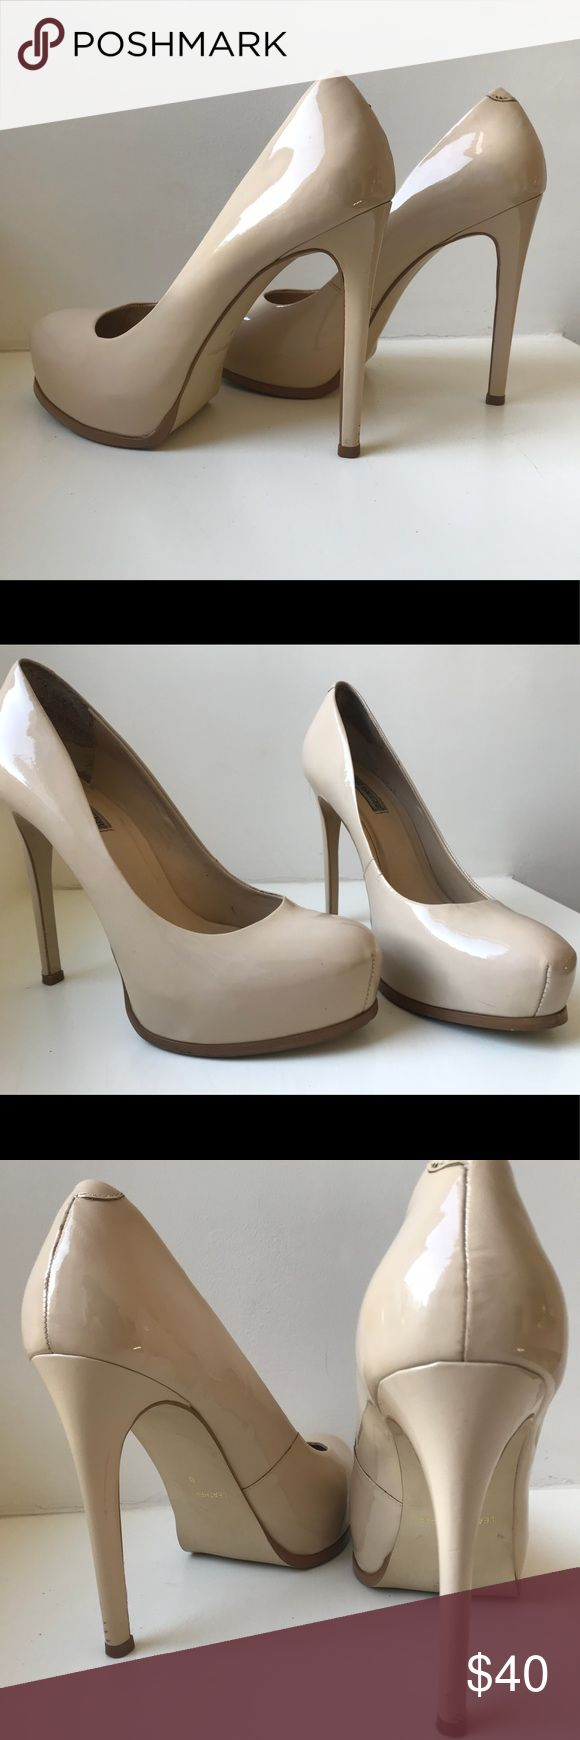 Kelsi Dagger Linzy Pump Patent leather platform pump by Kelsi Dagger.  Leather soles. Nude/sand color. They are one size too small for me now but I have gotten light wear out of them. Very few/no scuff marks. Light wear on soles and on left stiletto (see photos). Perfect substitute for Louboutin lovers. Kelsi Dagger Shoes Heels